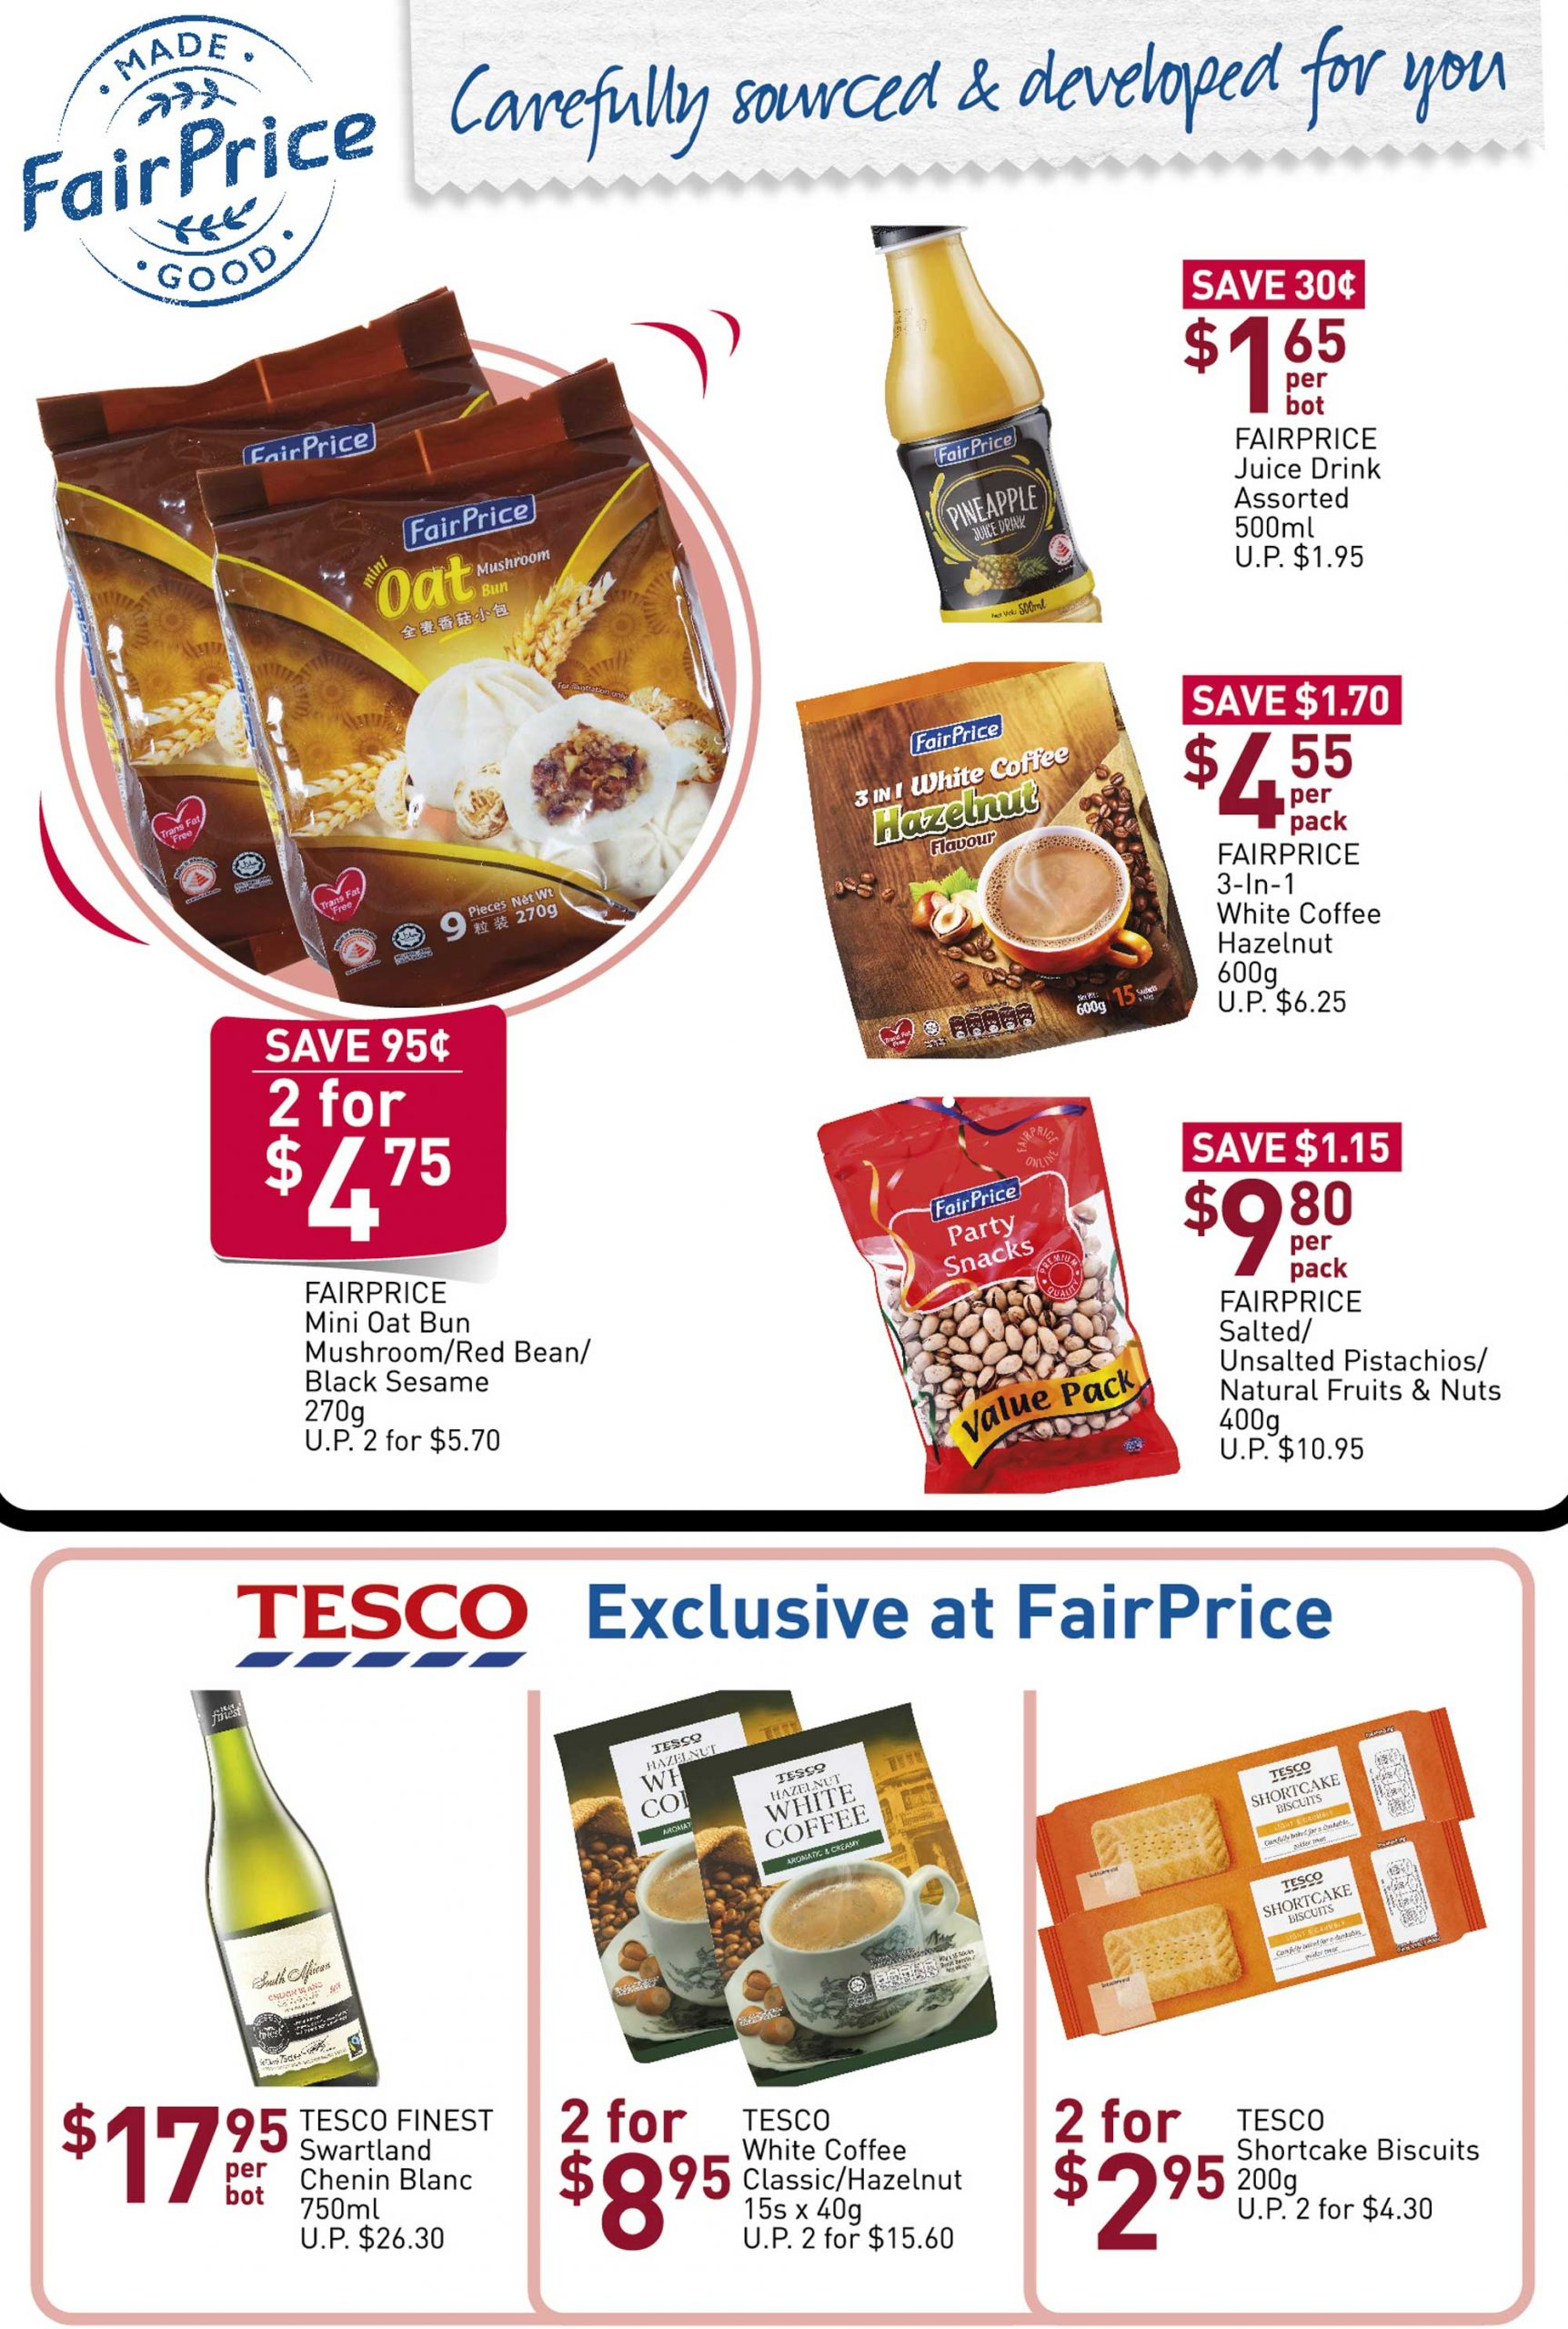 NTUC FairPrice SG Your Weekly Saver Promotion 26 Mar - 1 Apr 2020 | Why Not Deals 9 & Promotions